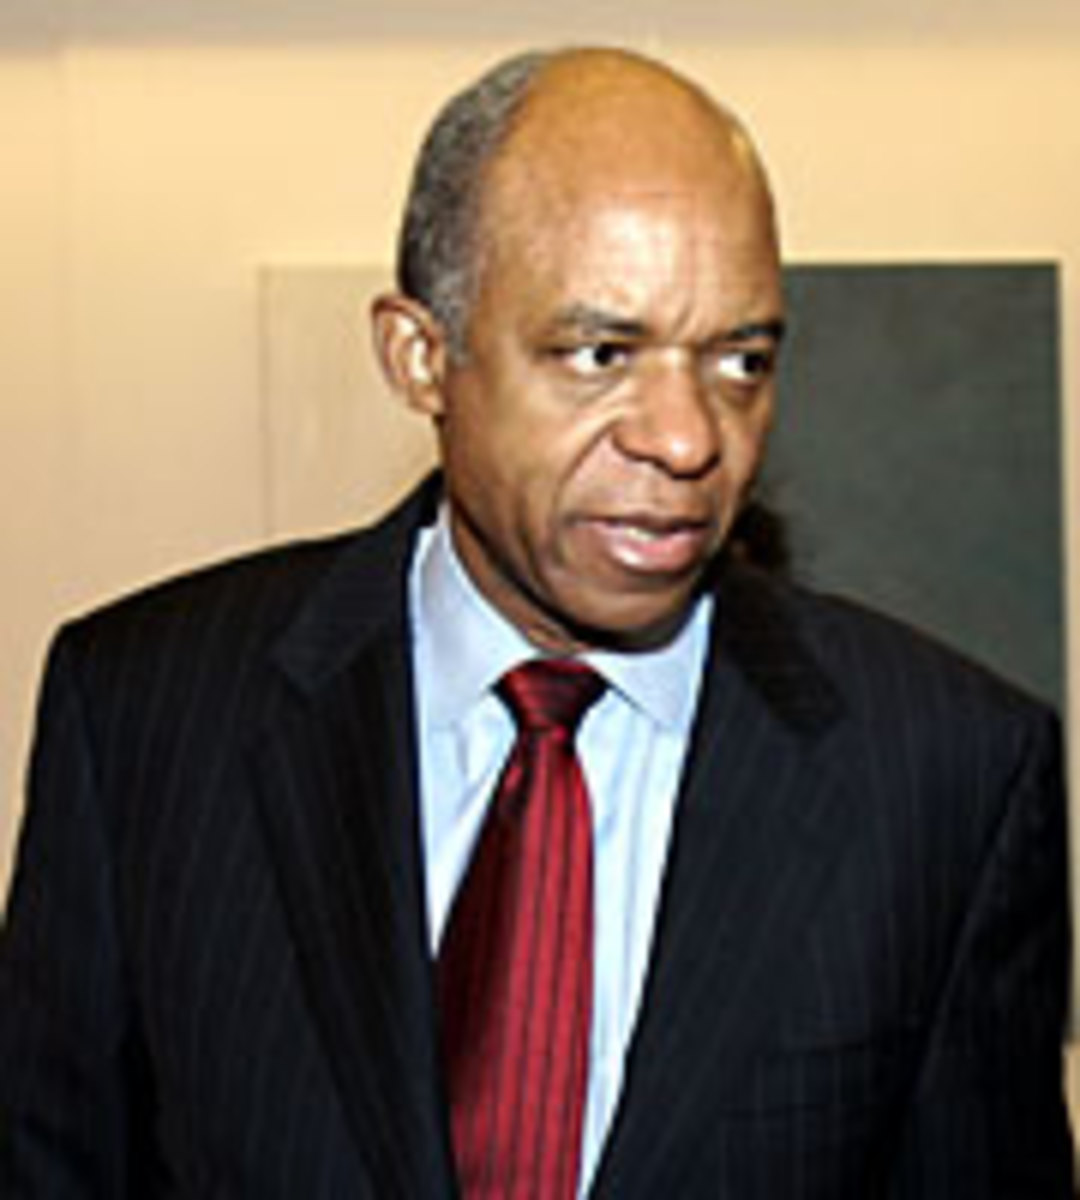 william jefferson